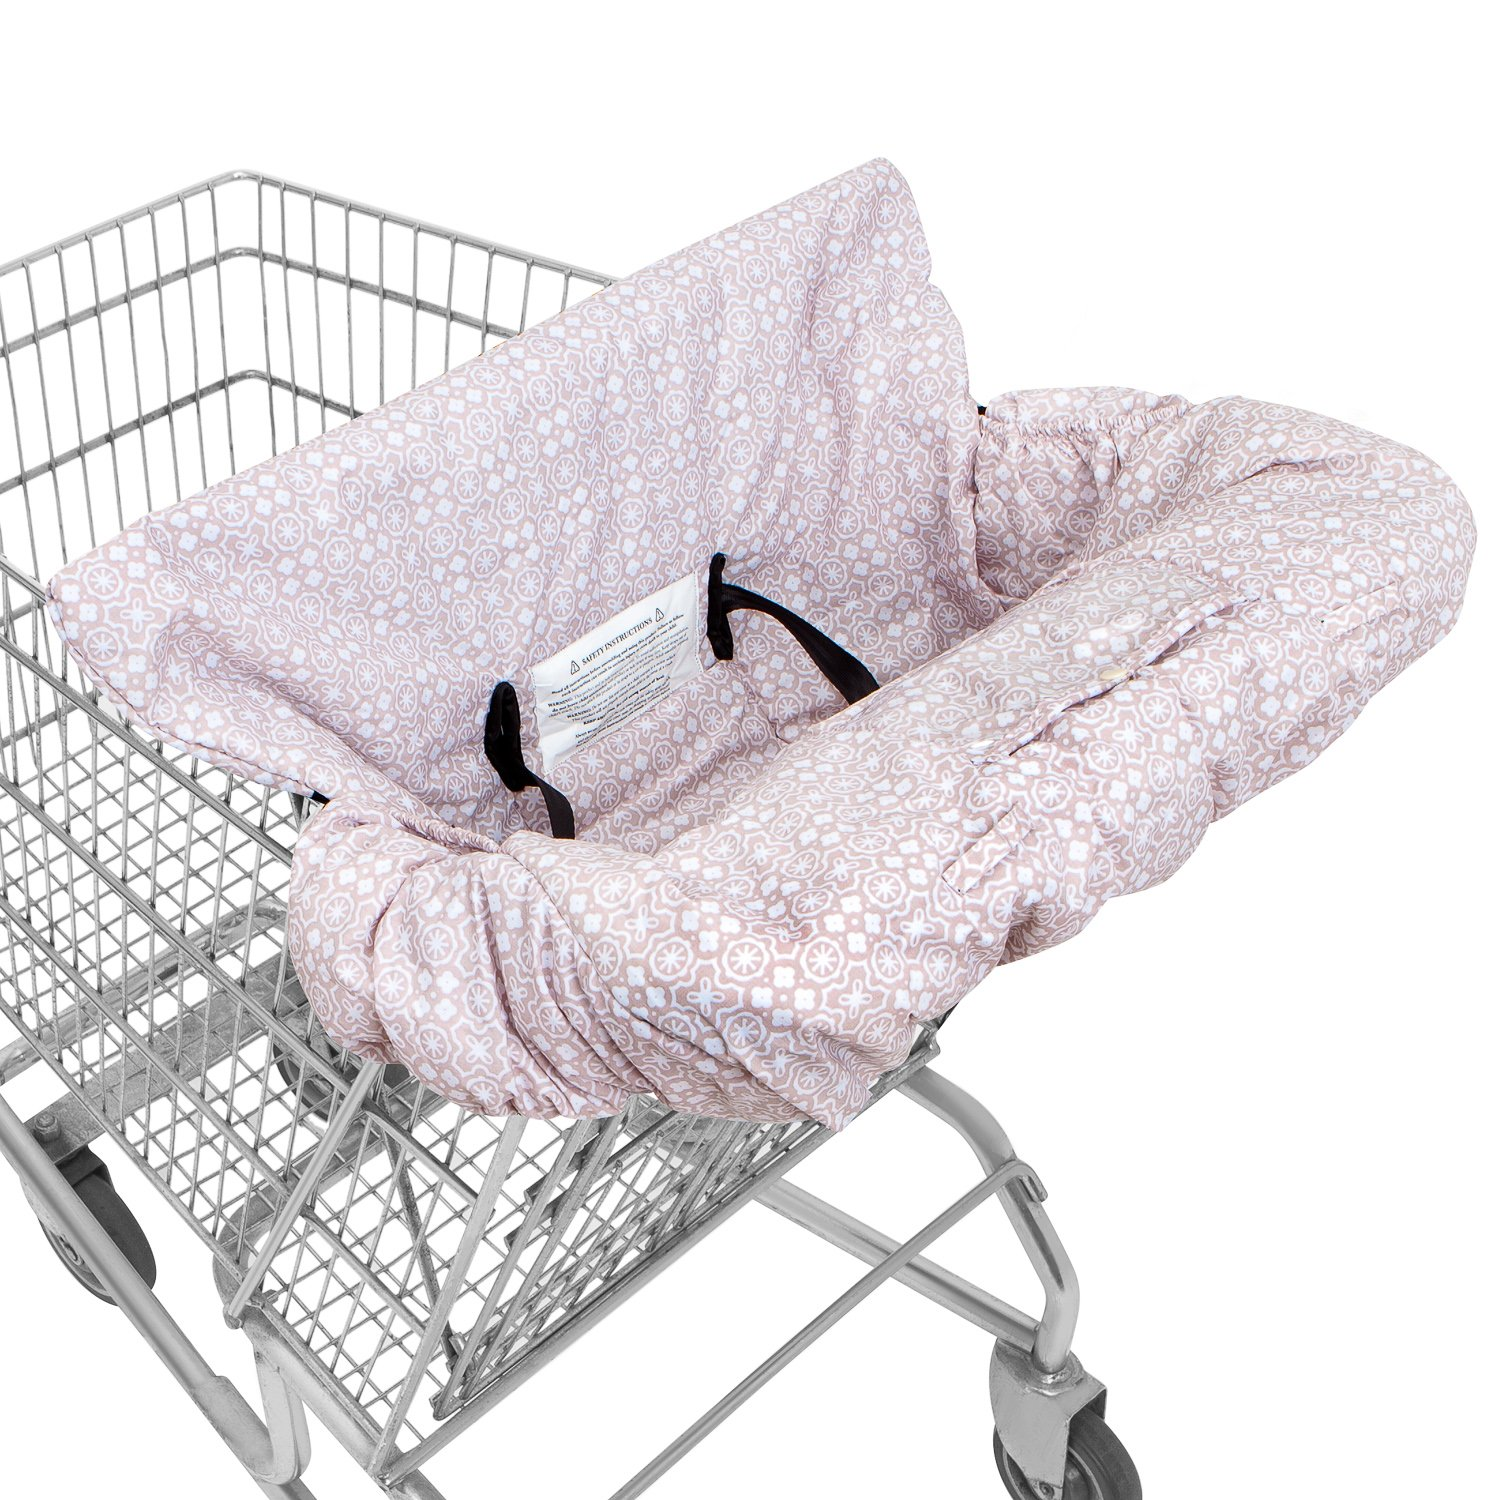 Cheap Zebra Shopping Cart Cover Find Zebra Shopping Cart Cover